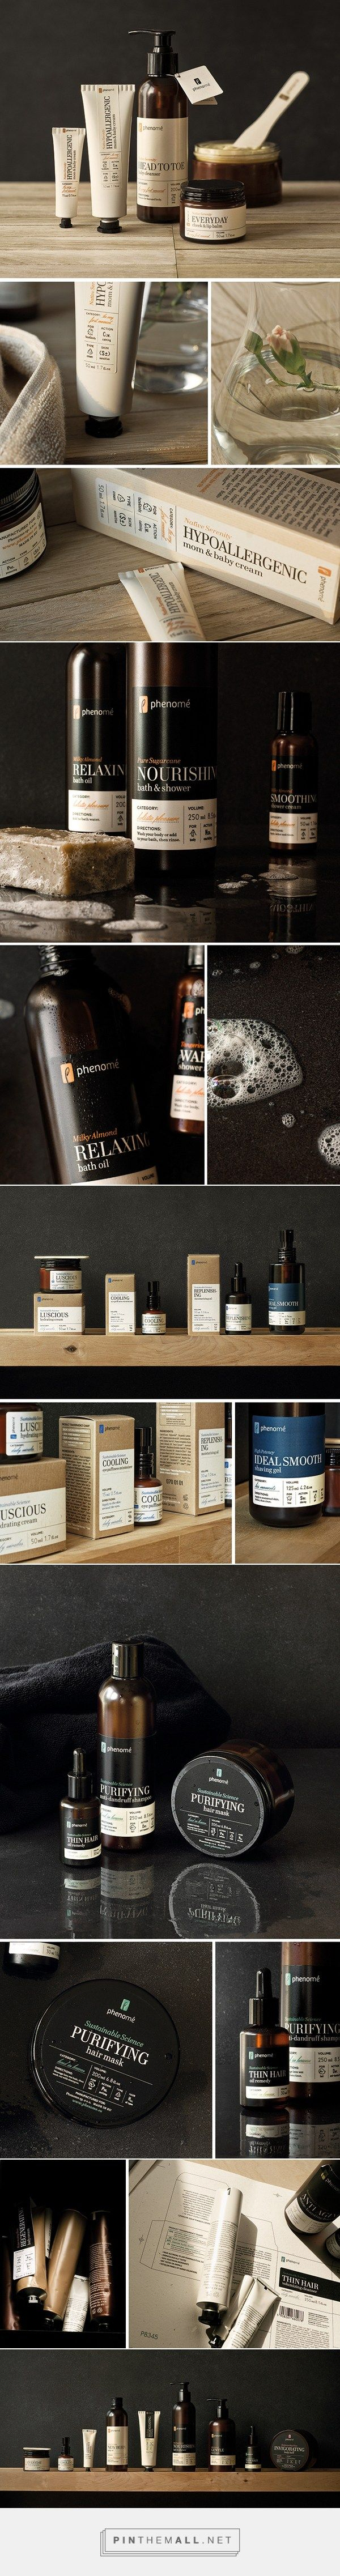 Phenome Organic Skincare Product Packaging by Ah&Oh Studio